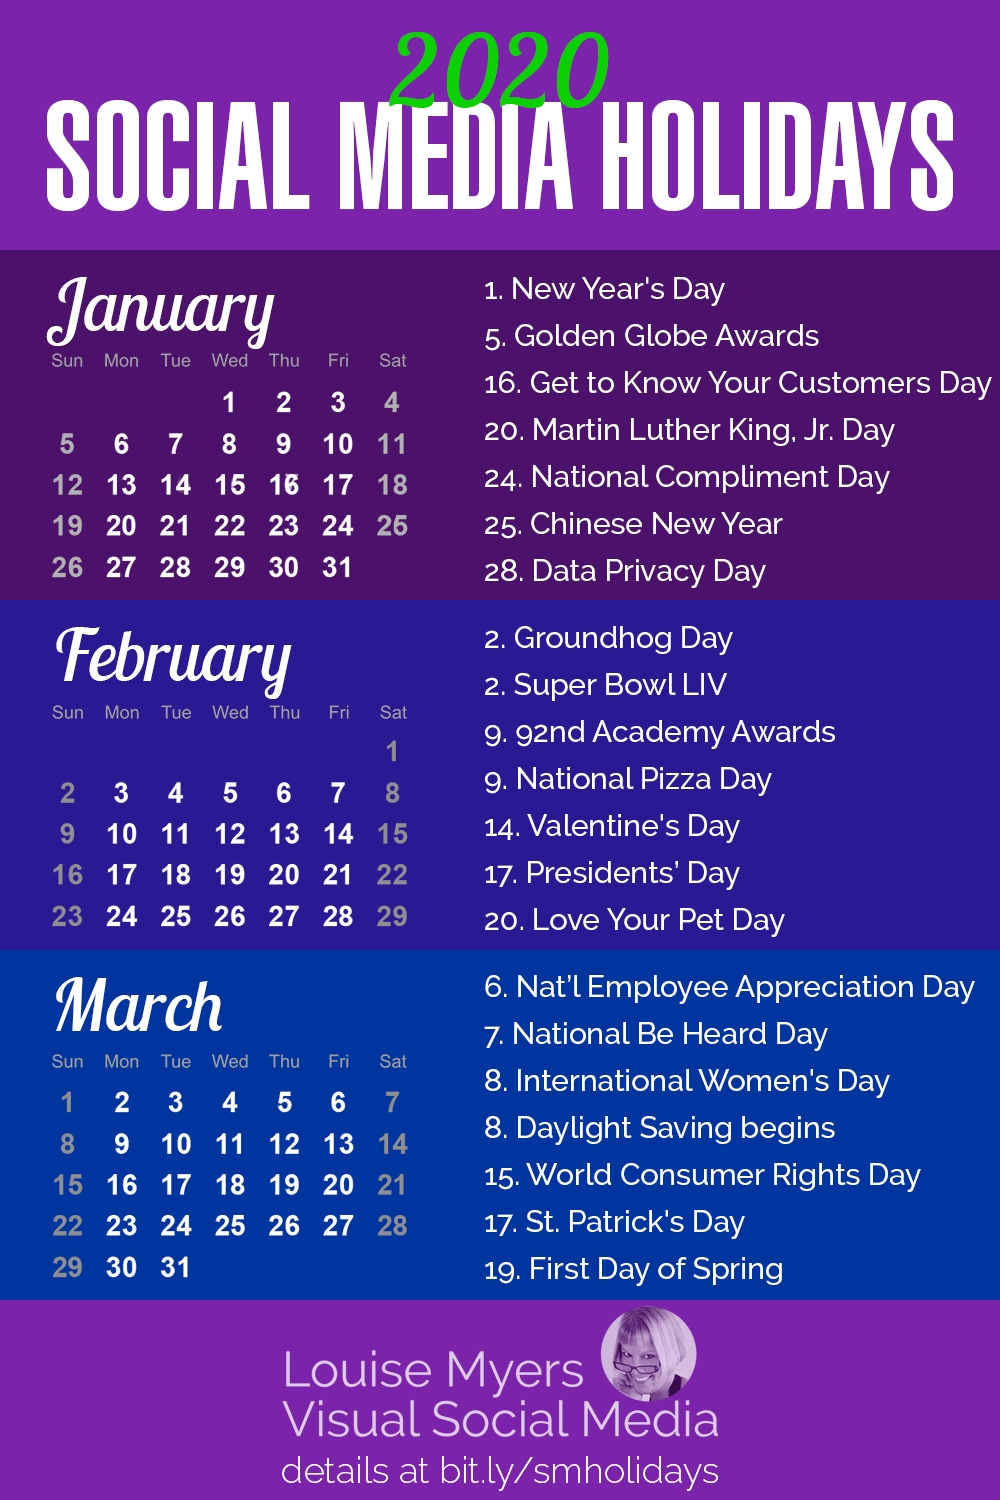 84 Social Media Holidays You Need In 2020: Indispensable! regarding 2020 Special Days Of The Year